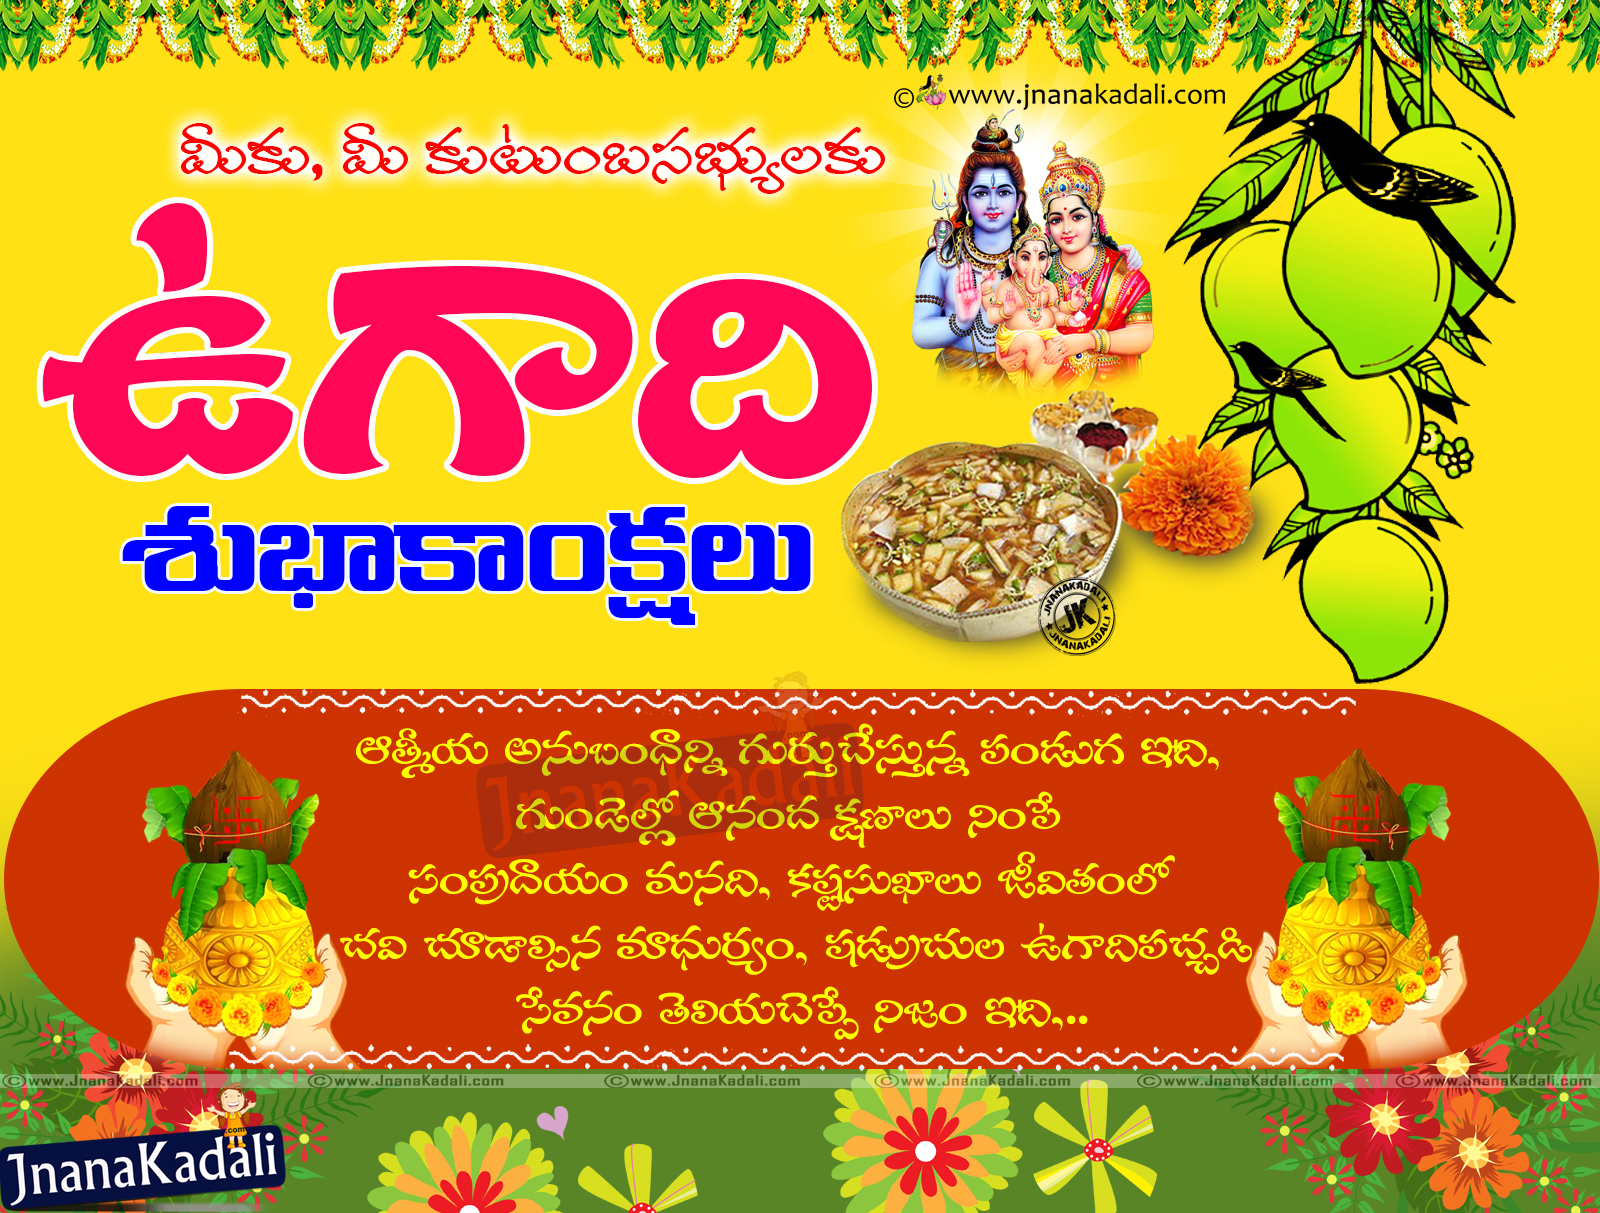 Best telugu ugadi greetings quotes wishes jnana kadali telugu new year ugadi greetings quotes wallpapers best telugu ugadi greetings for friends best of ugadi greetings designs ideas wallpapers for facebook kristyandbryce Images